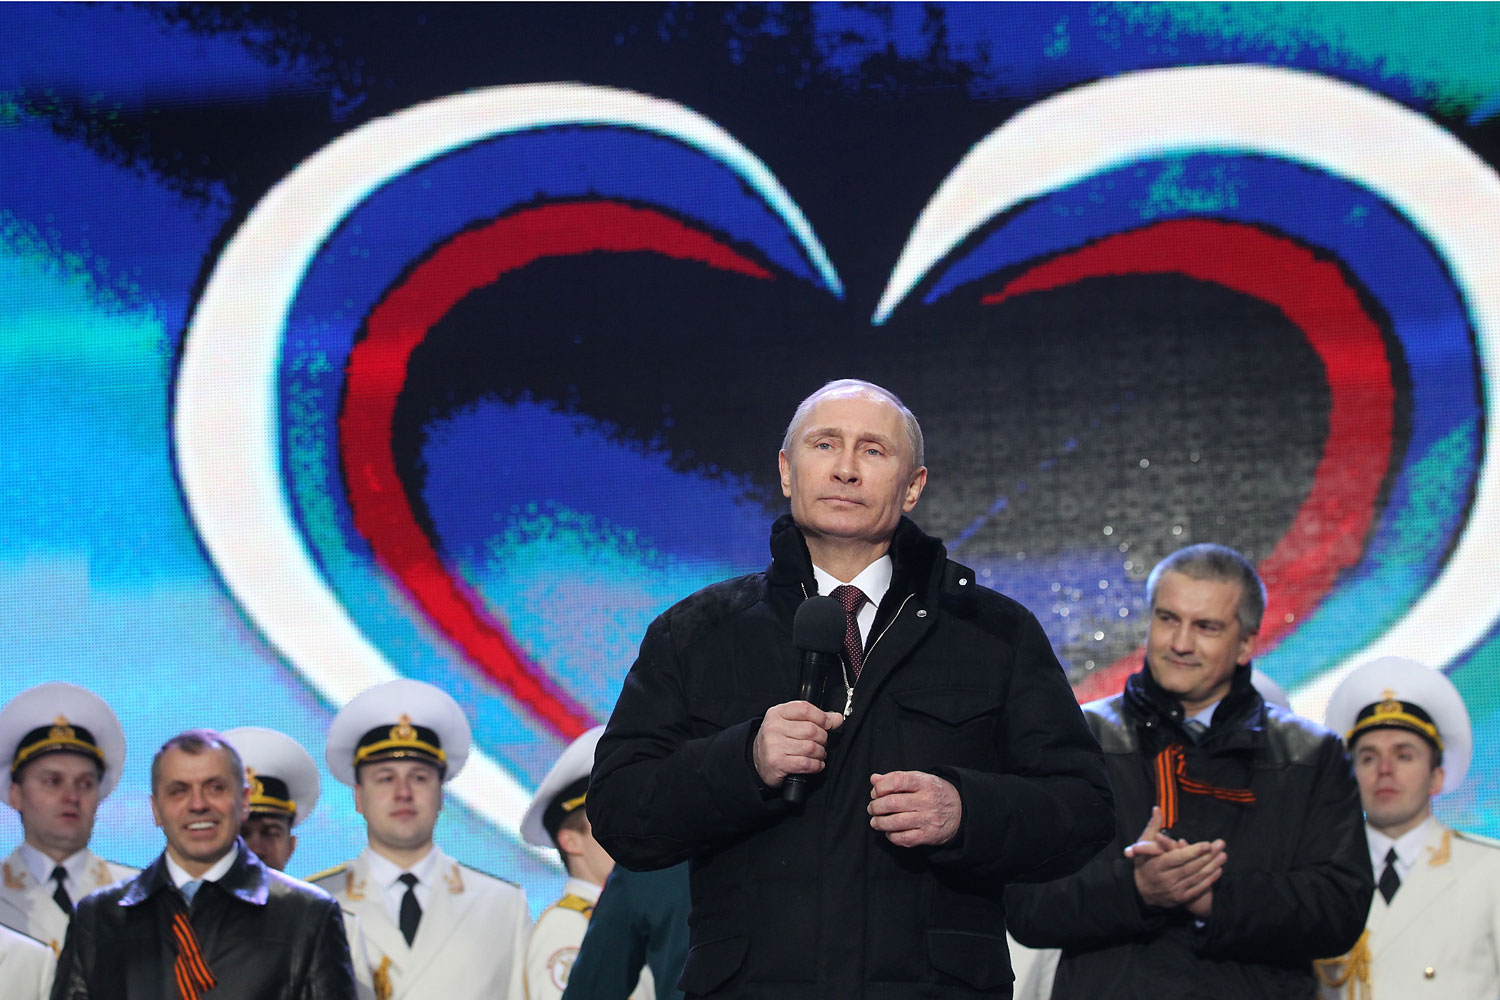 Russian President Vladimir Putin and Crimean Prime Minister Sergei Aksyonov attend a rally at Red Square on March 18, 2014 in Moscow.